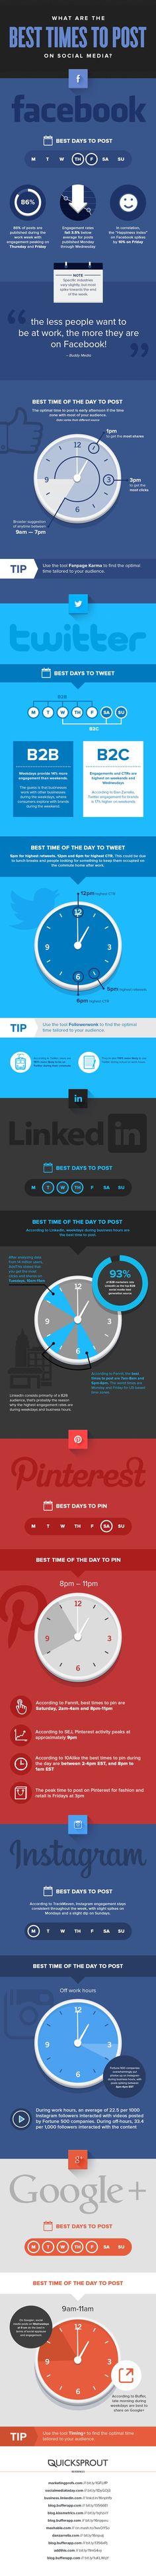 What Are The Best Times to Post on Social Media Profiles - for small businesses, companies and brands. #Social #MediaMarketing